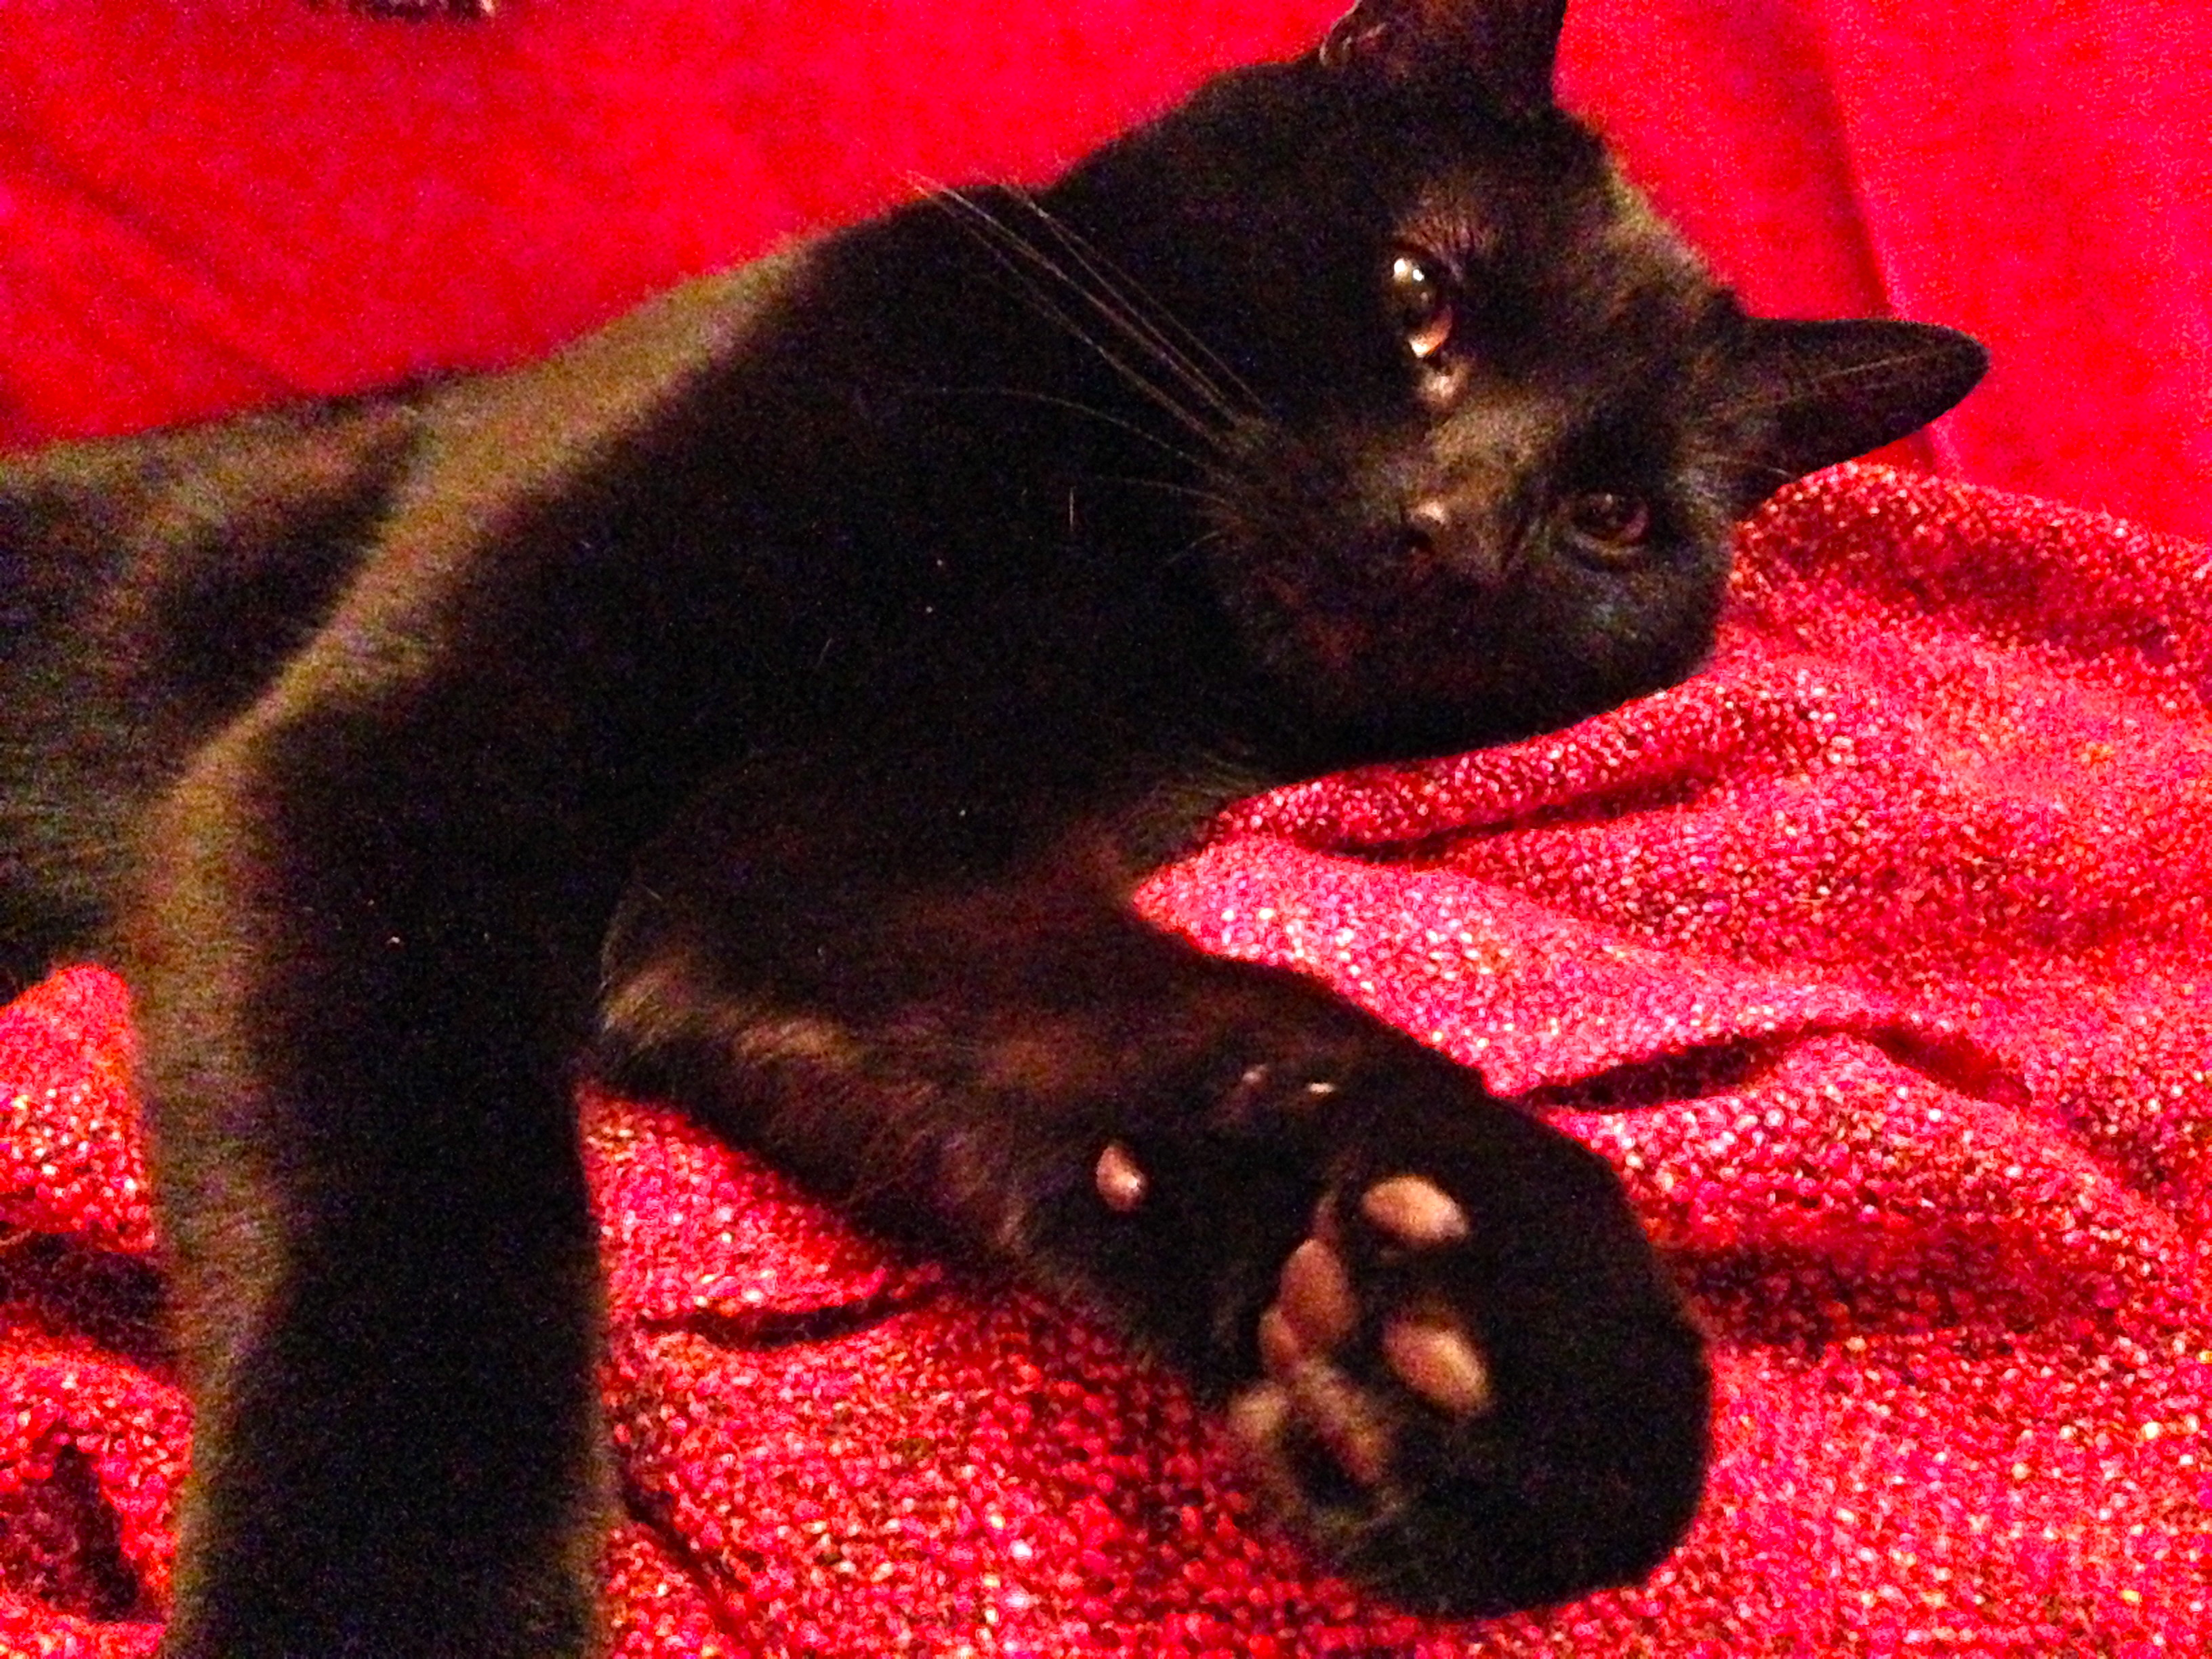 Vegan Cats: Paws for Thought?